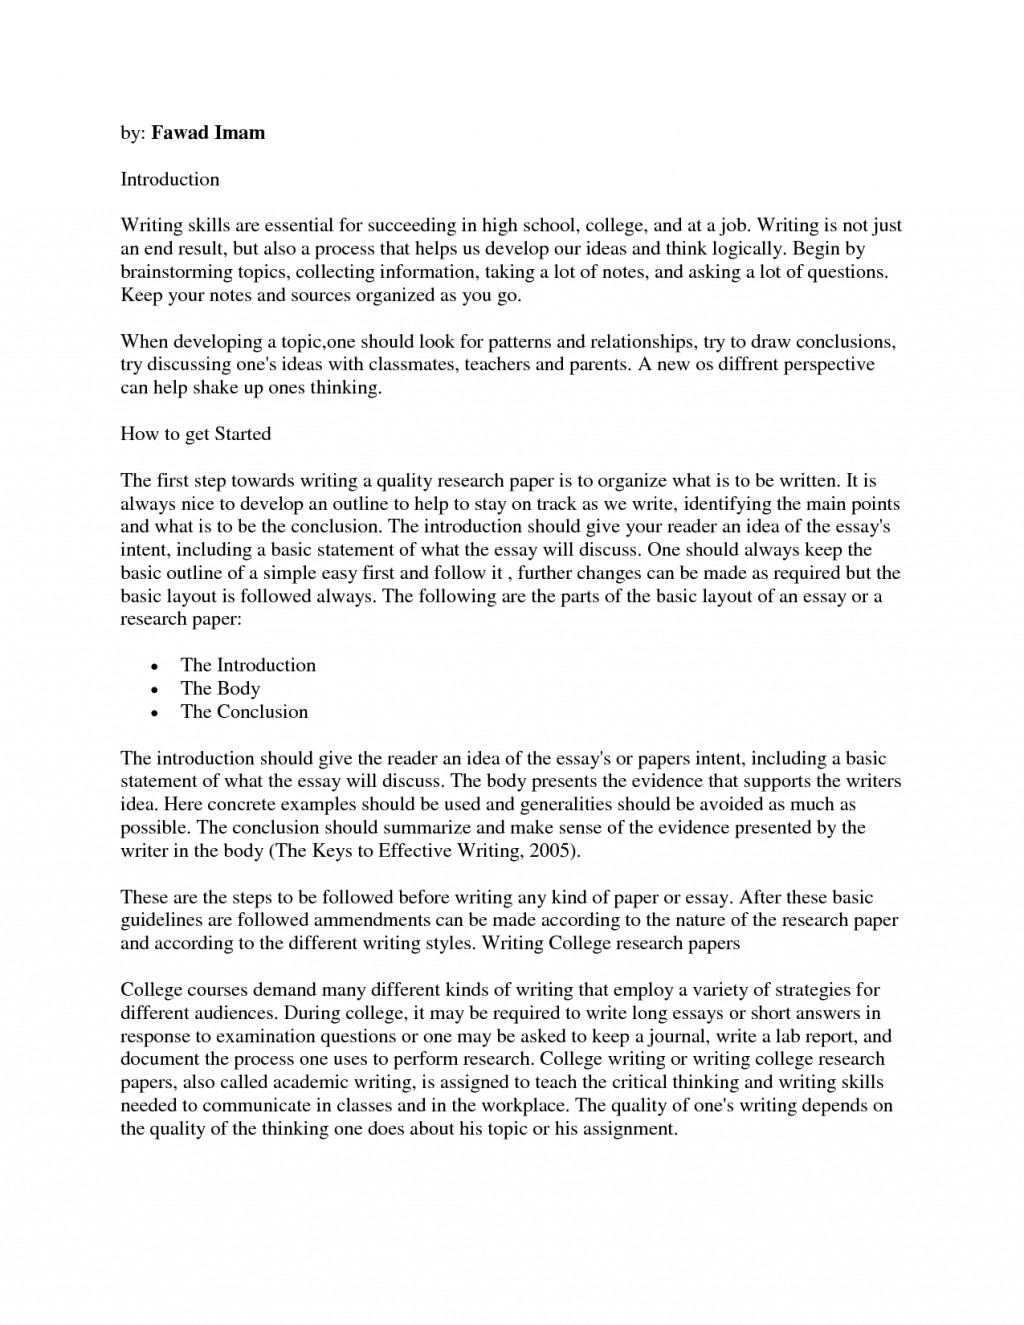 006 How To Write Research Papers Paper Outstanding A Proposal Or Thesis In Apa Format Introduction Pdf Large